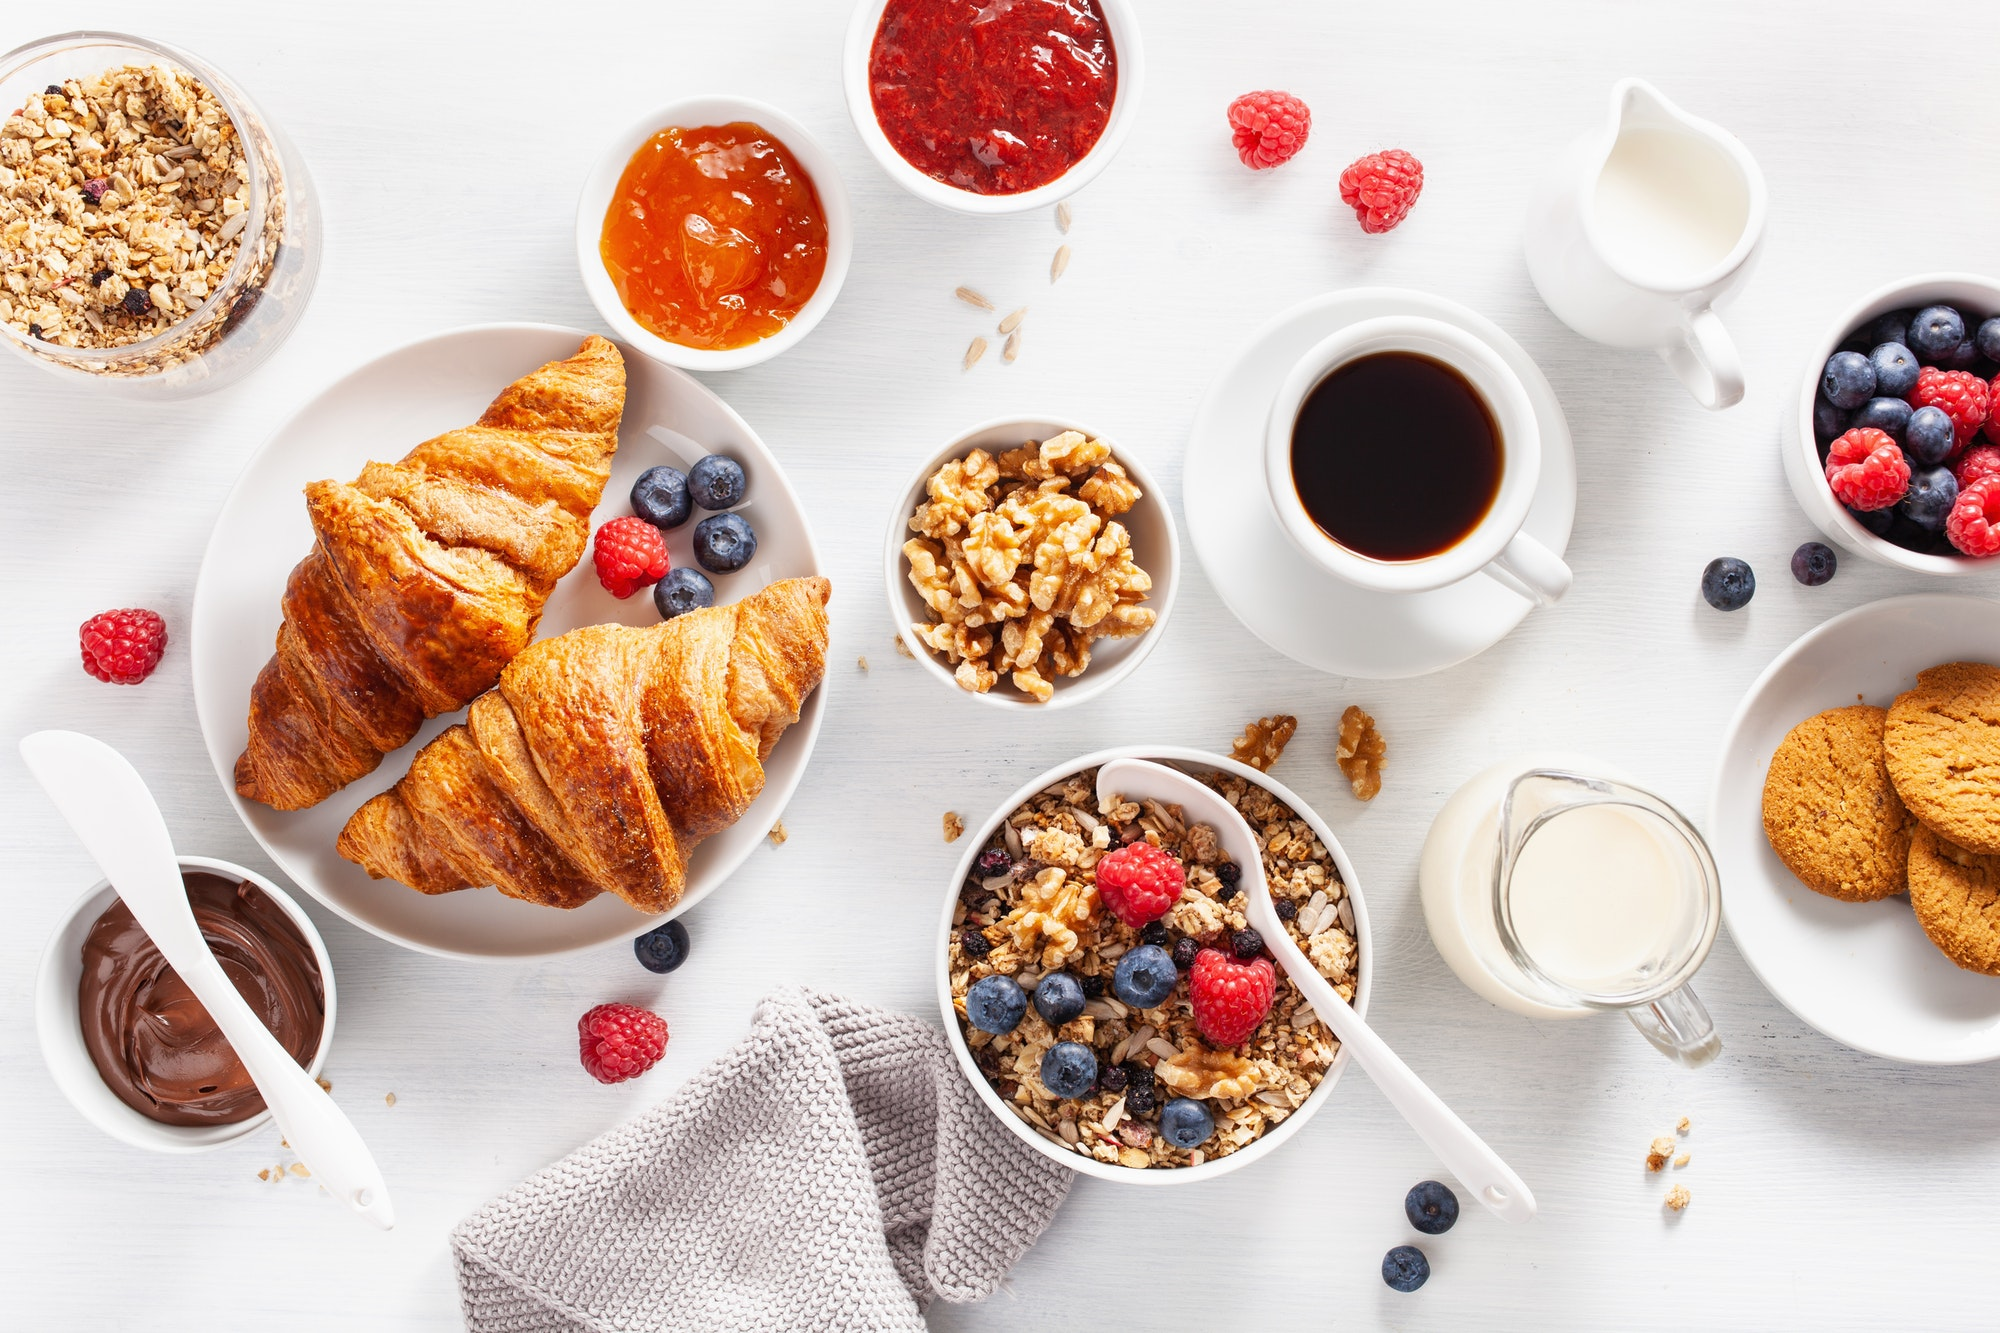 Continental breakfast with croissant, jam, chocolate spread - continental breakfasts